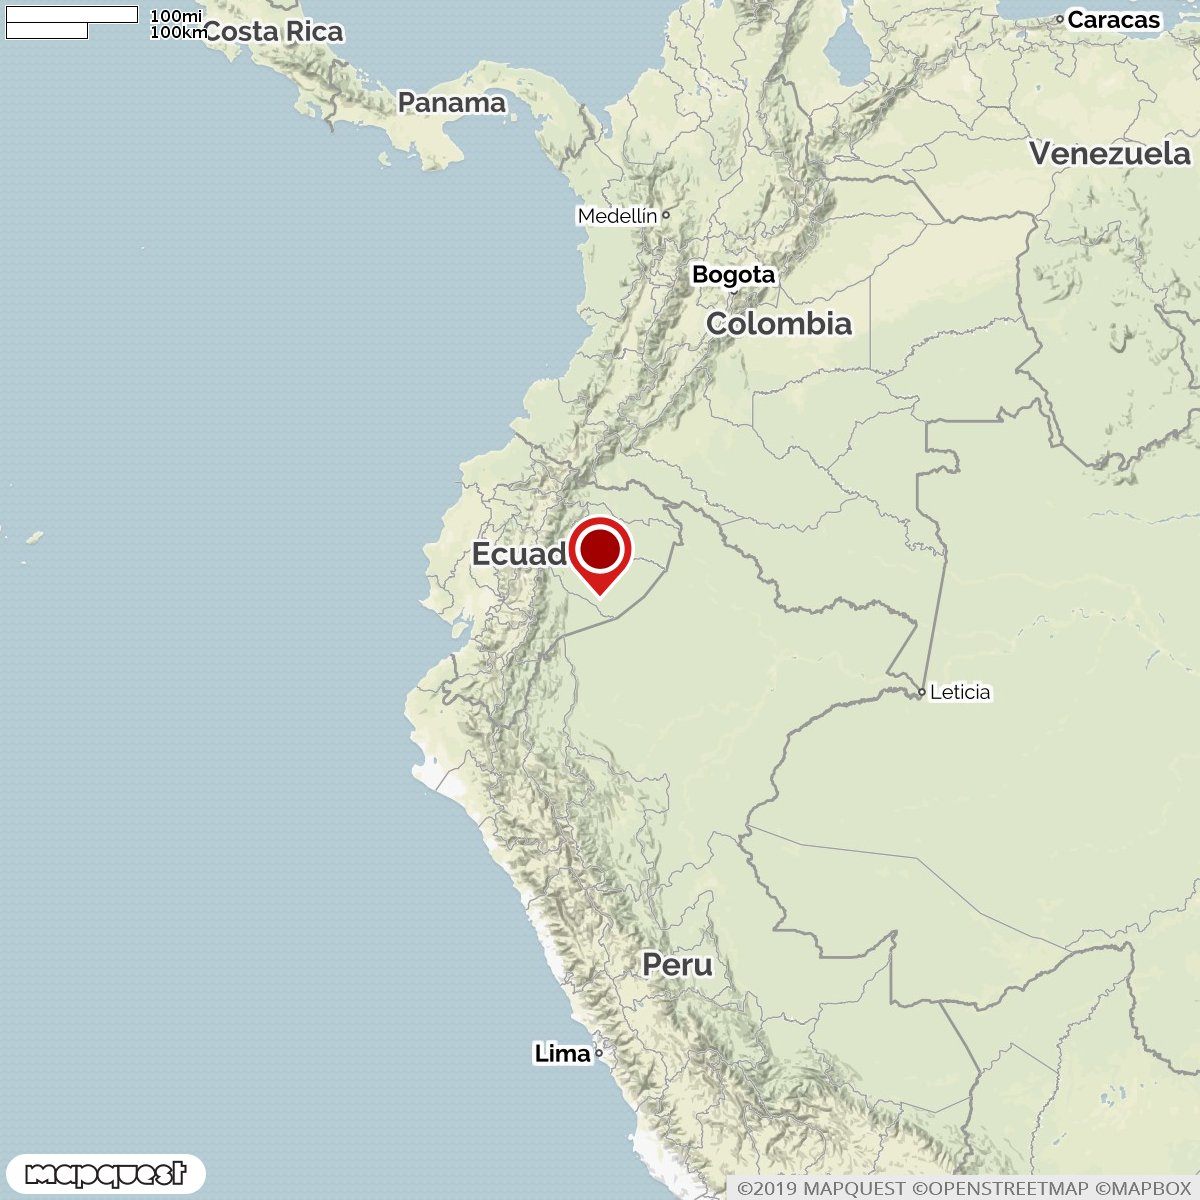 World Earthquakes on the Map (@MapQuake) | Twitter